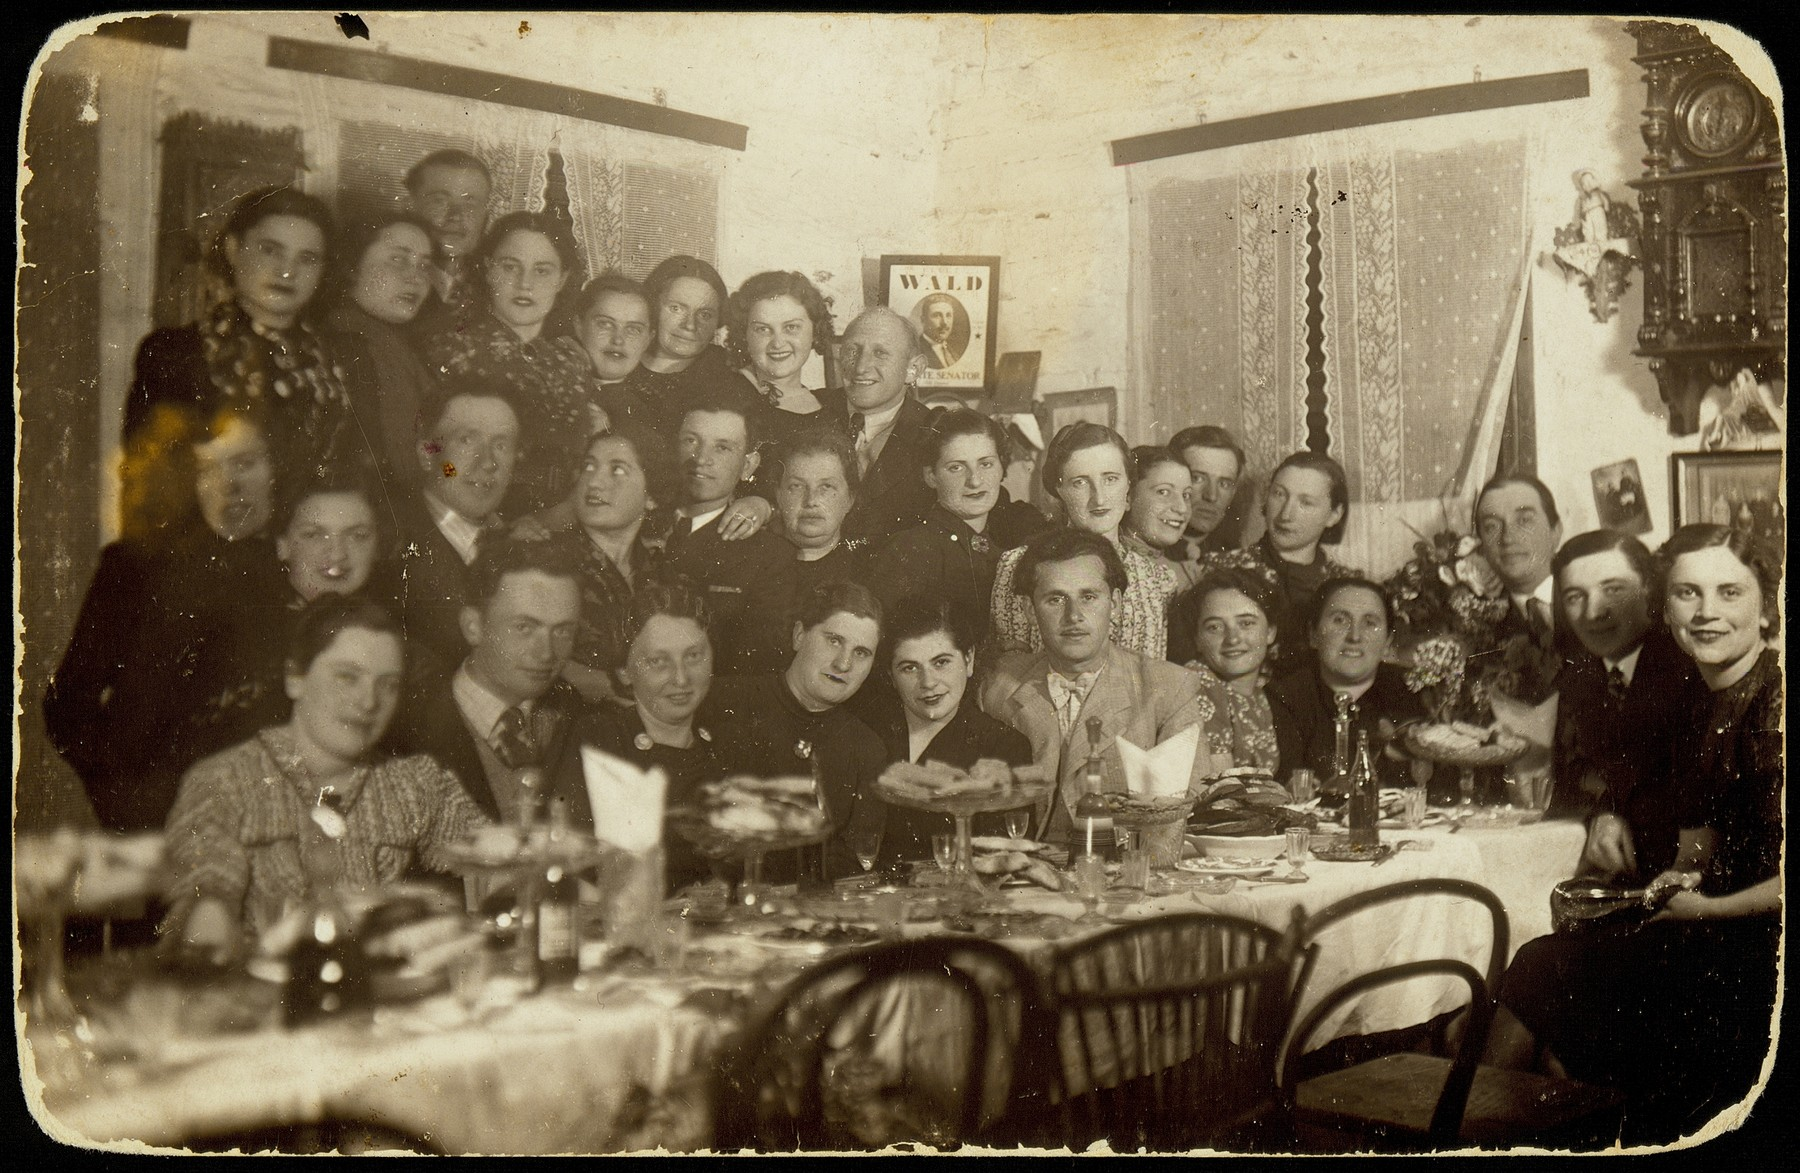 Going-away party in honor of a young woman's imminent departure for Palestine.    Top row at far right, Yehiel Blacharowicz.  Middle row at far right, Szeine Blacharowicz and fourth from right is Miriam Kabacznik Shulman.  Sitting fifth from right is Kreinele Kanichowski, sixth from right, Zvi Hirshke Schwartz and third from left is Shoshana Katz.   Miriam Kabacznik Shulman  and Szeine Blacharowicz survived the Holocaust is hiding.  Kreinele Kanichowski was murdered by soldiers of the Polish Home Army.  Most of the people in the photo were murdered by the Germans during the September 1941 mass killing action in Eisiskes and in other locations.